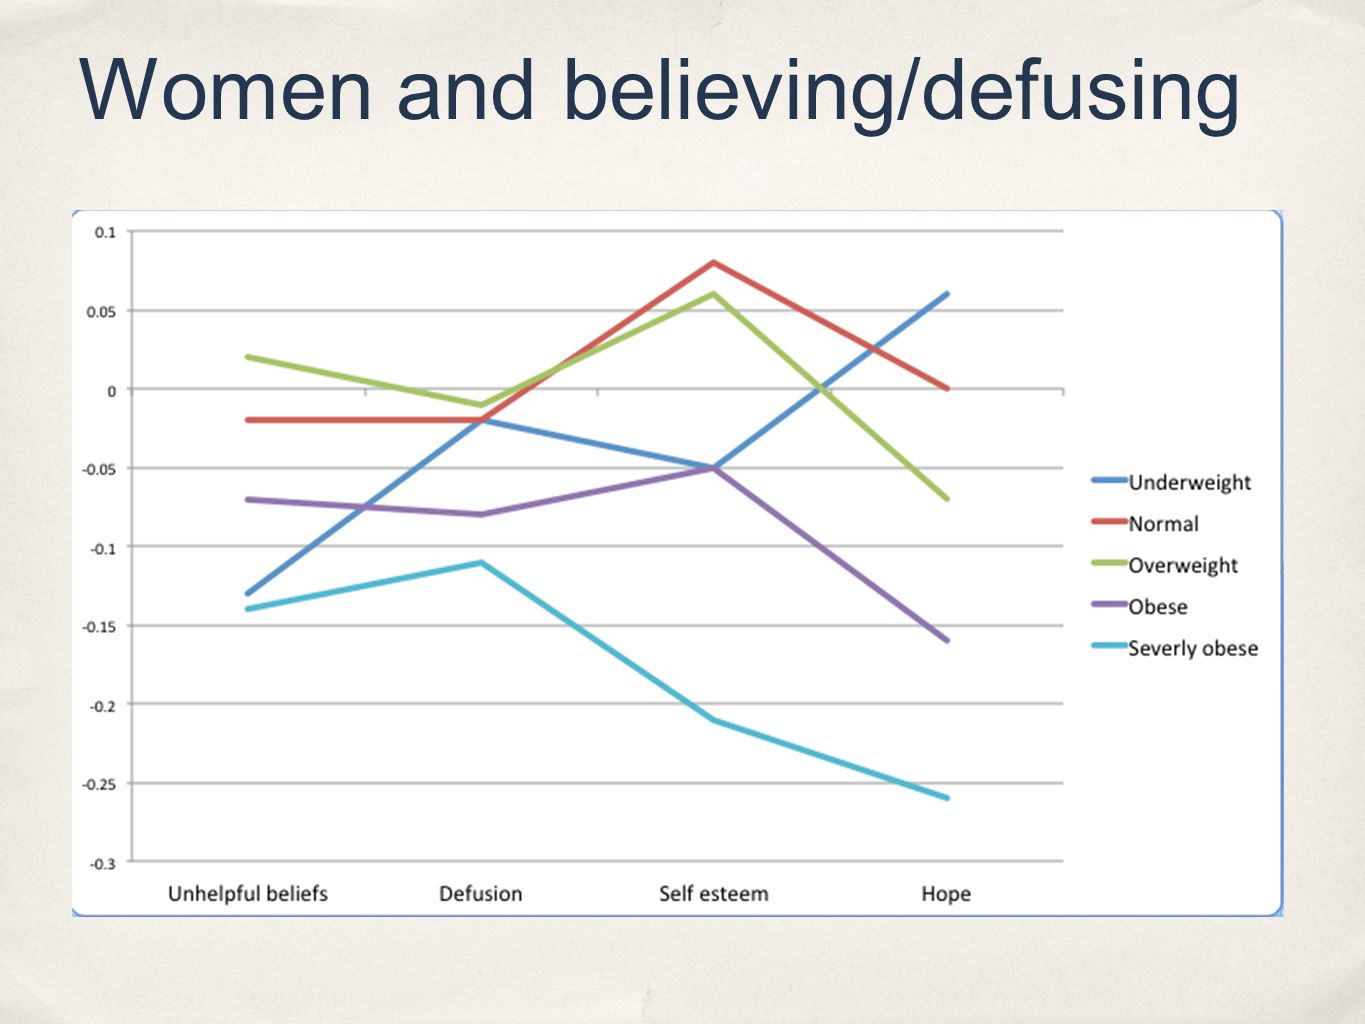 Women and believing/defusing